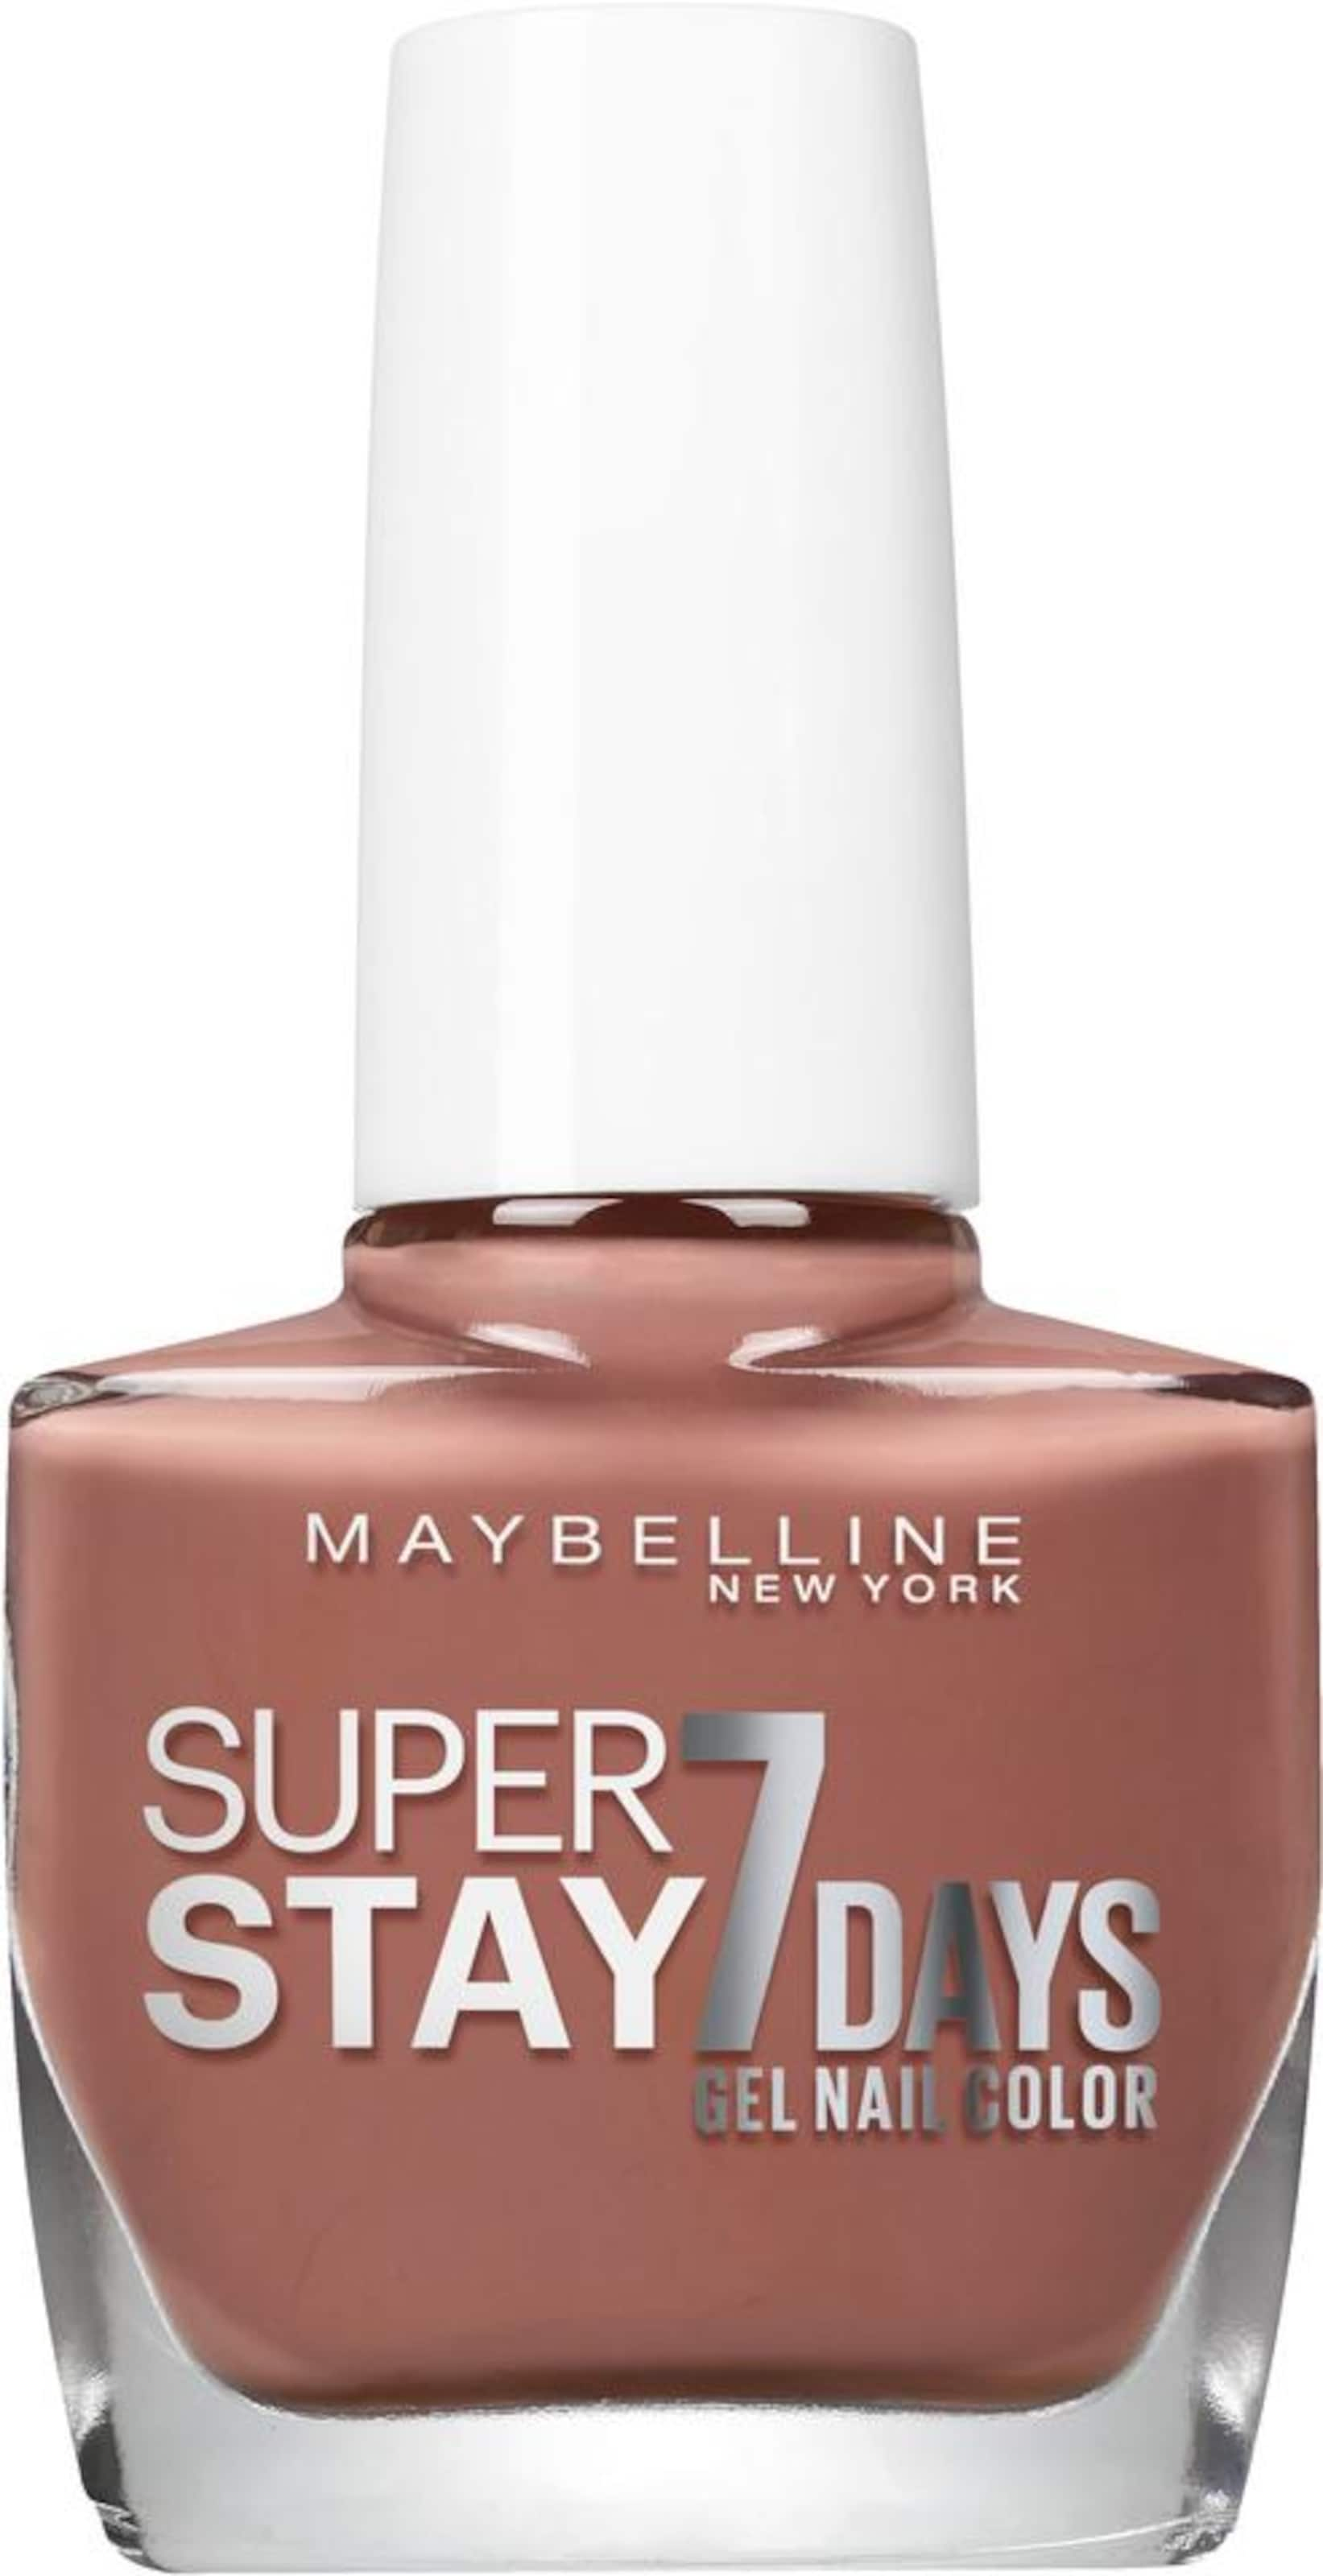 MAYBELLINE New York 'Nagellack Superstay 7 Tage City Nudes', Nagellack